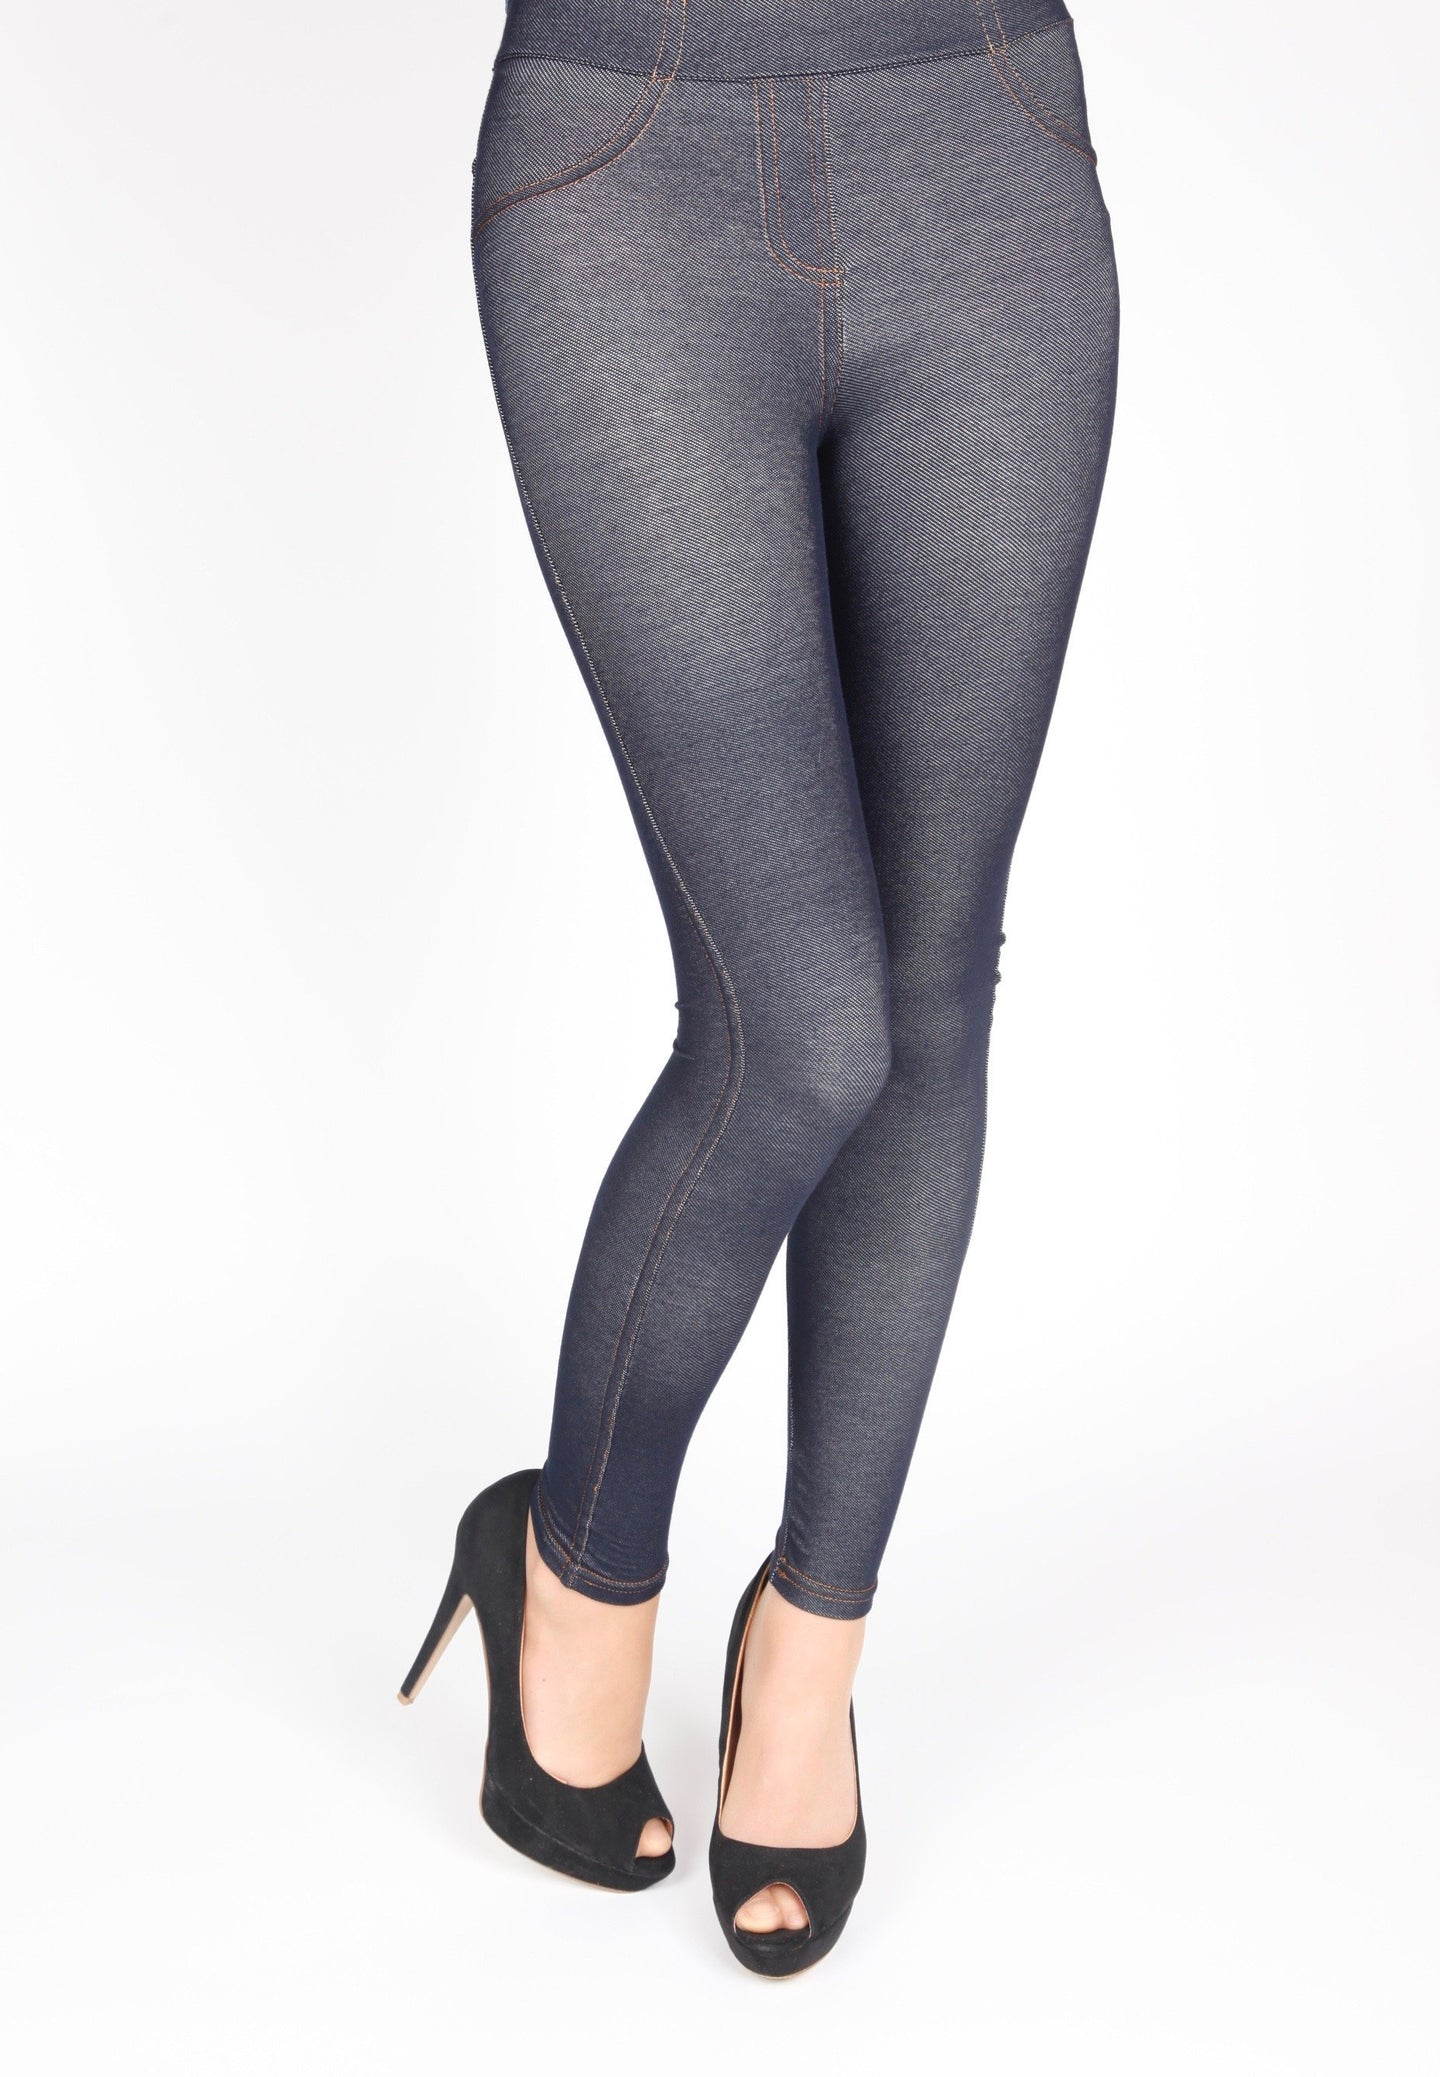 BLANKA women's leggings